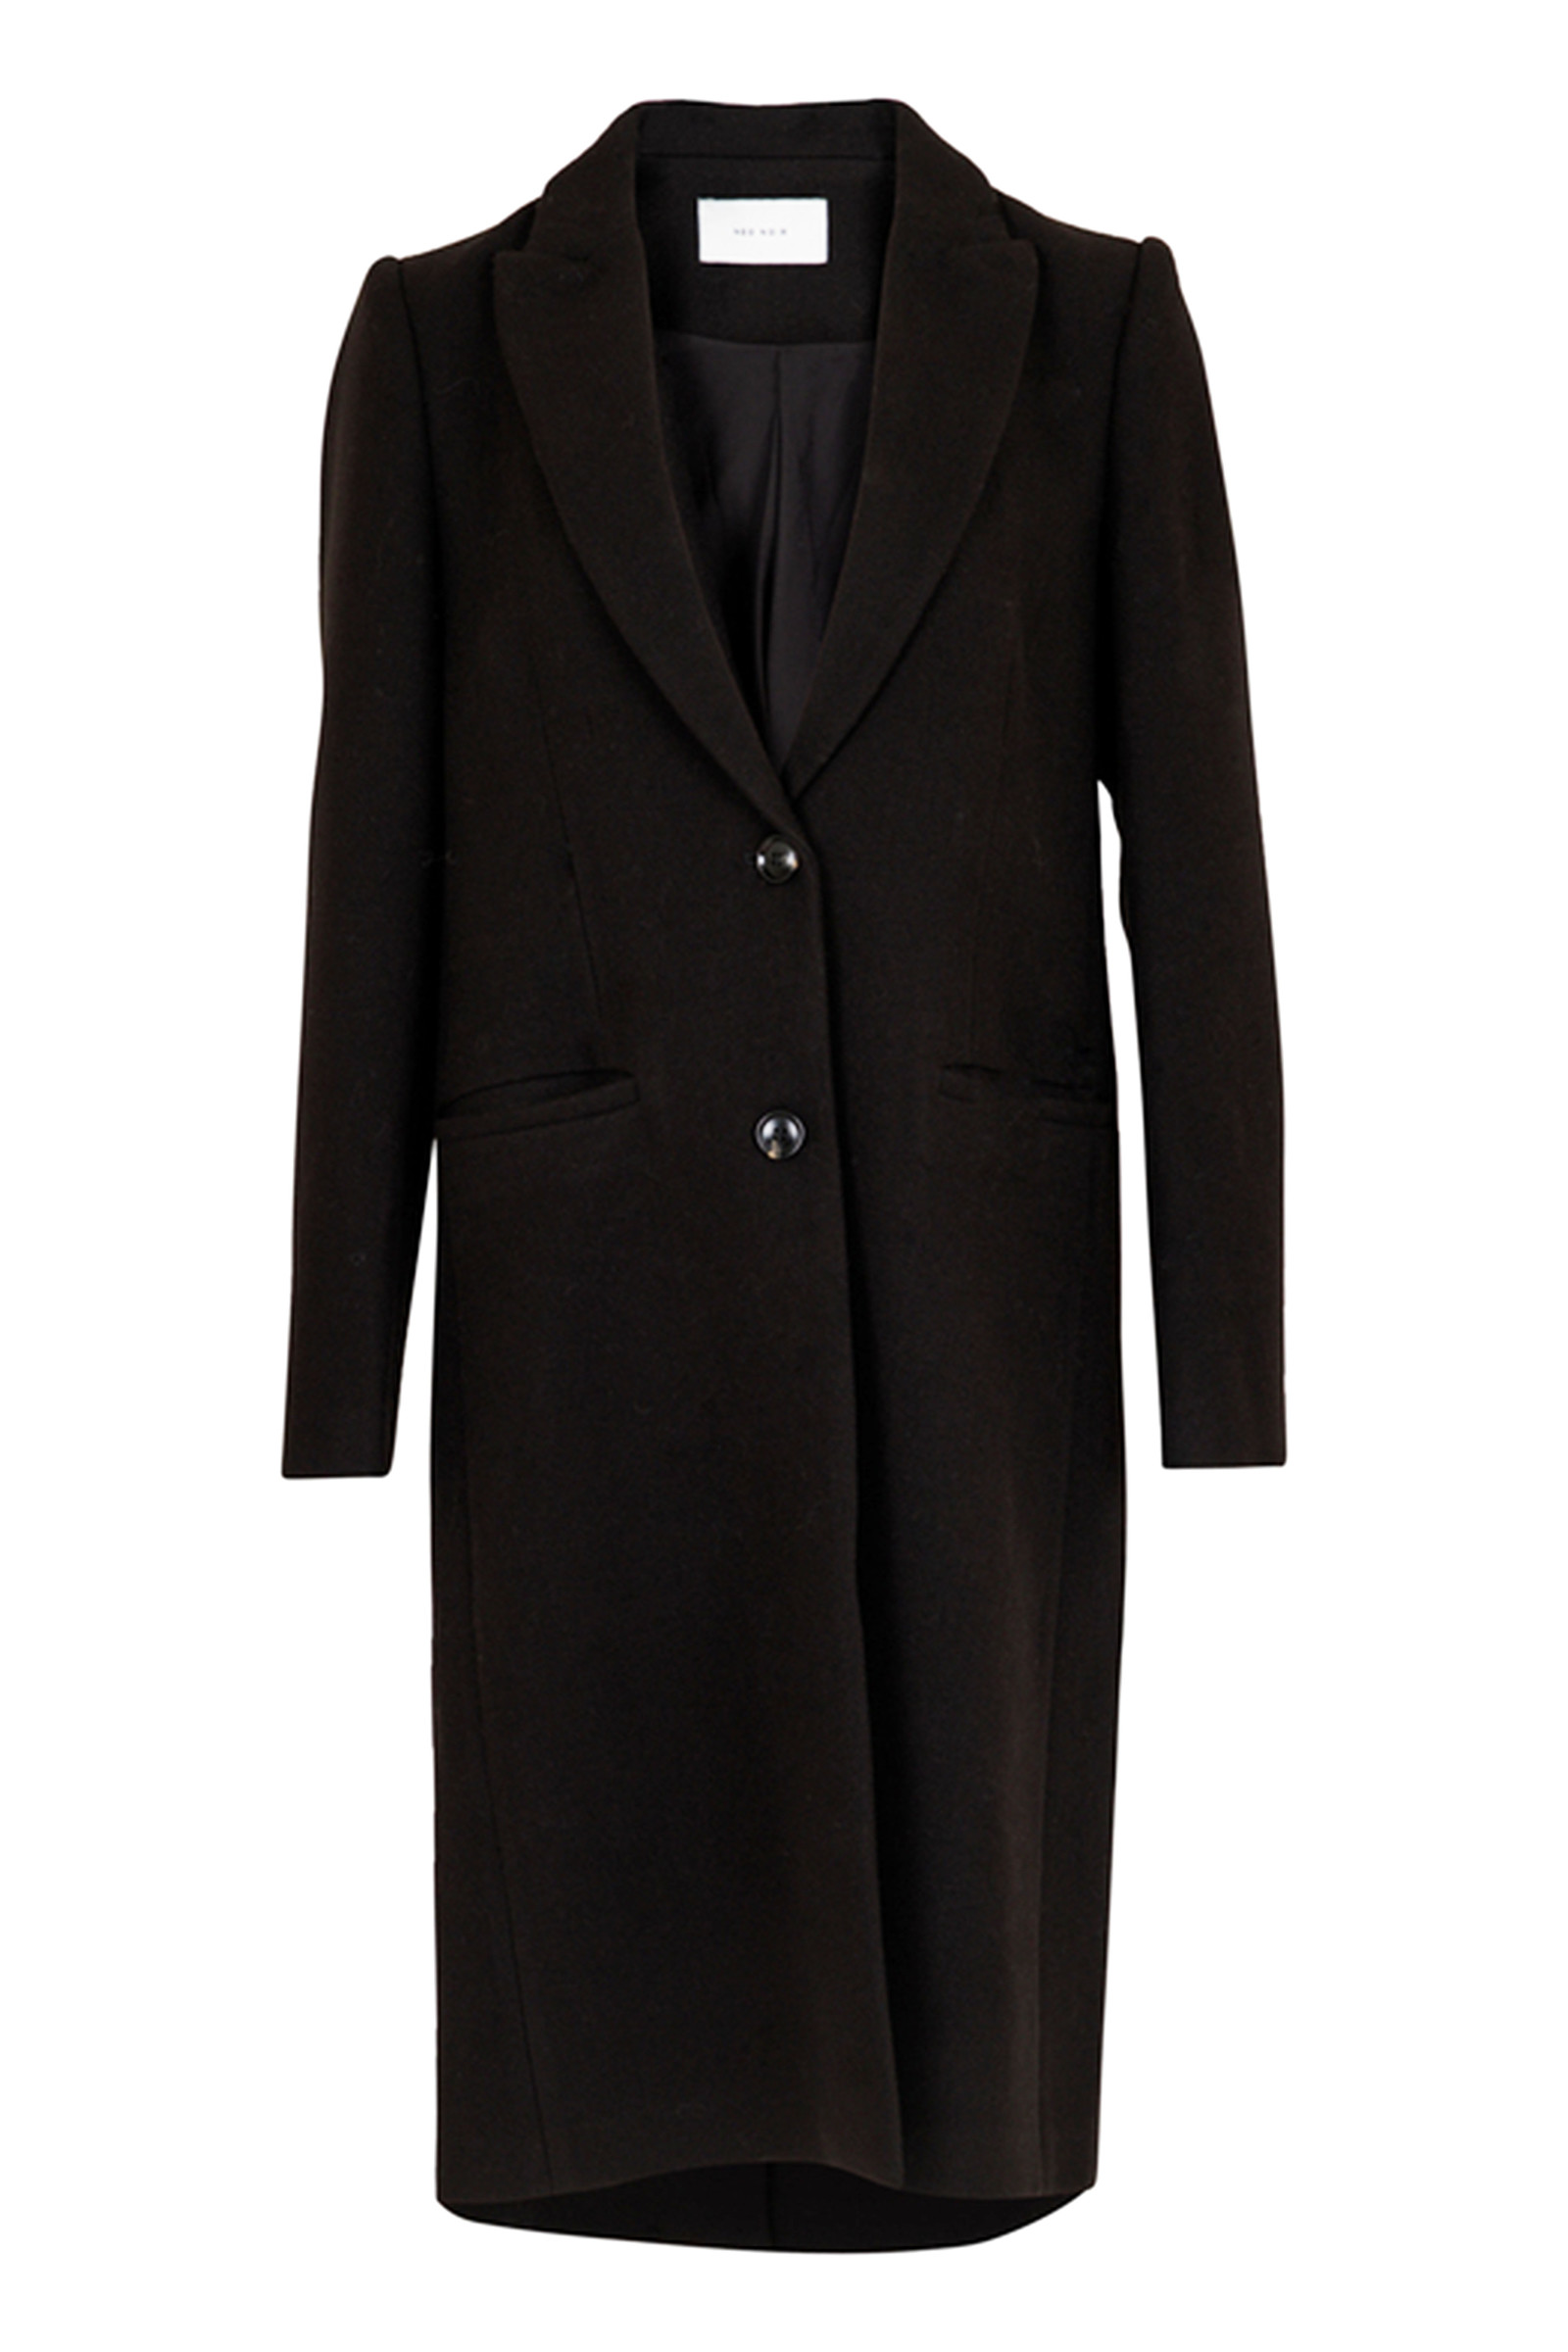 NEO NOIR BACARDI COAT 151395 Black